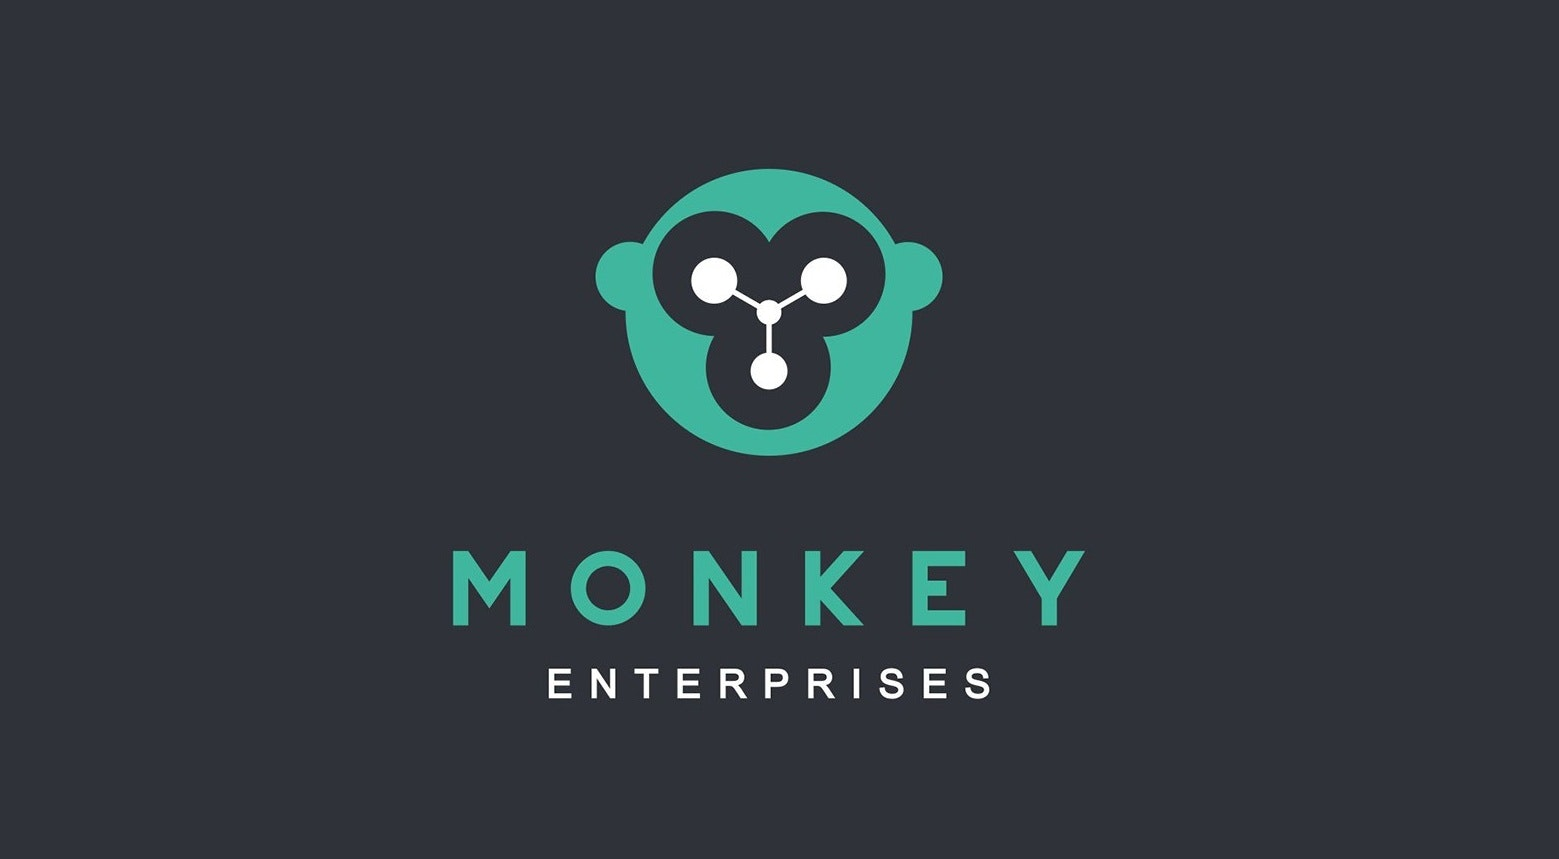 Monkey Enterprises logo